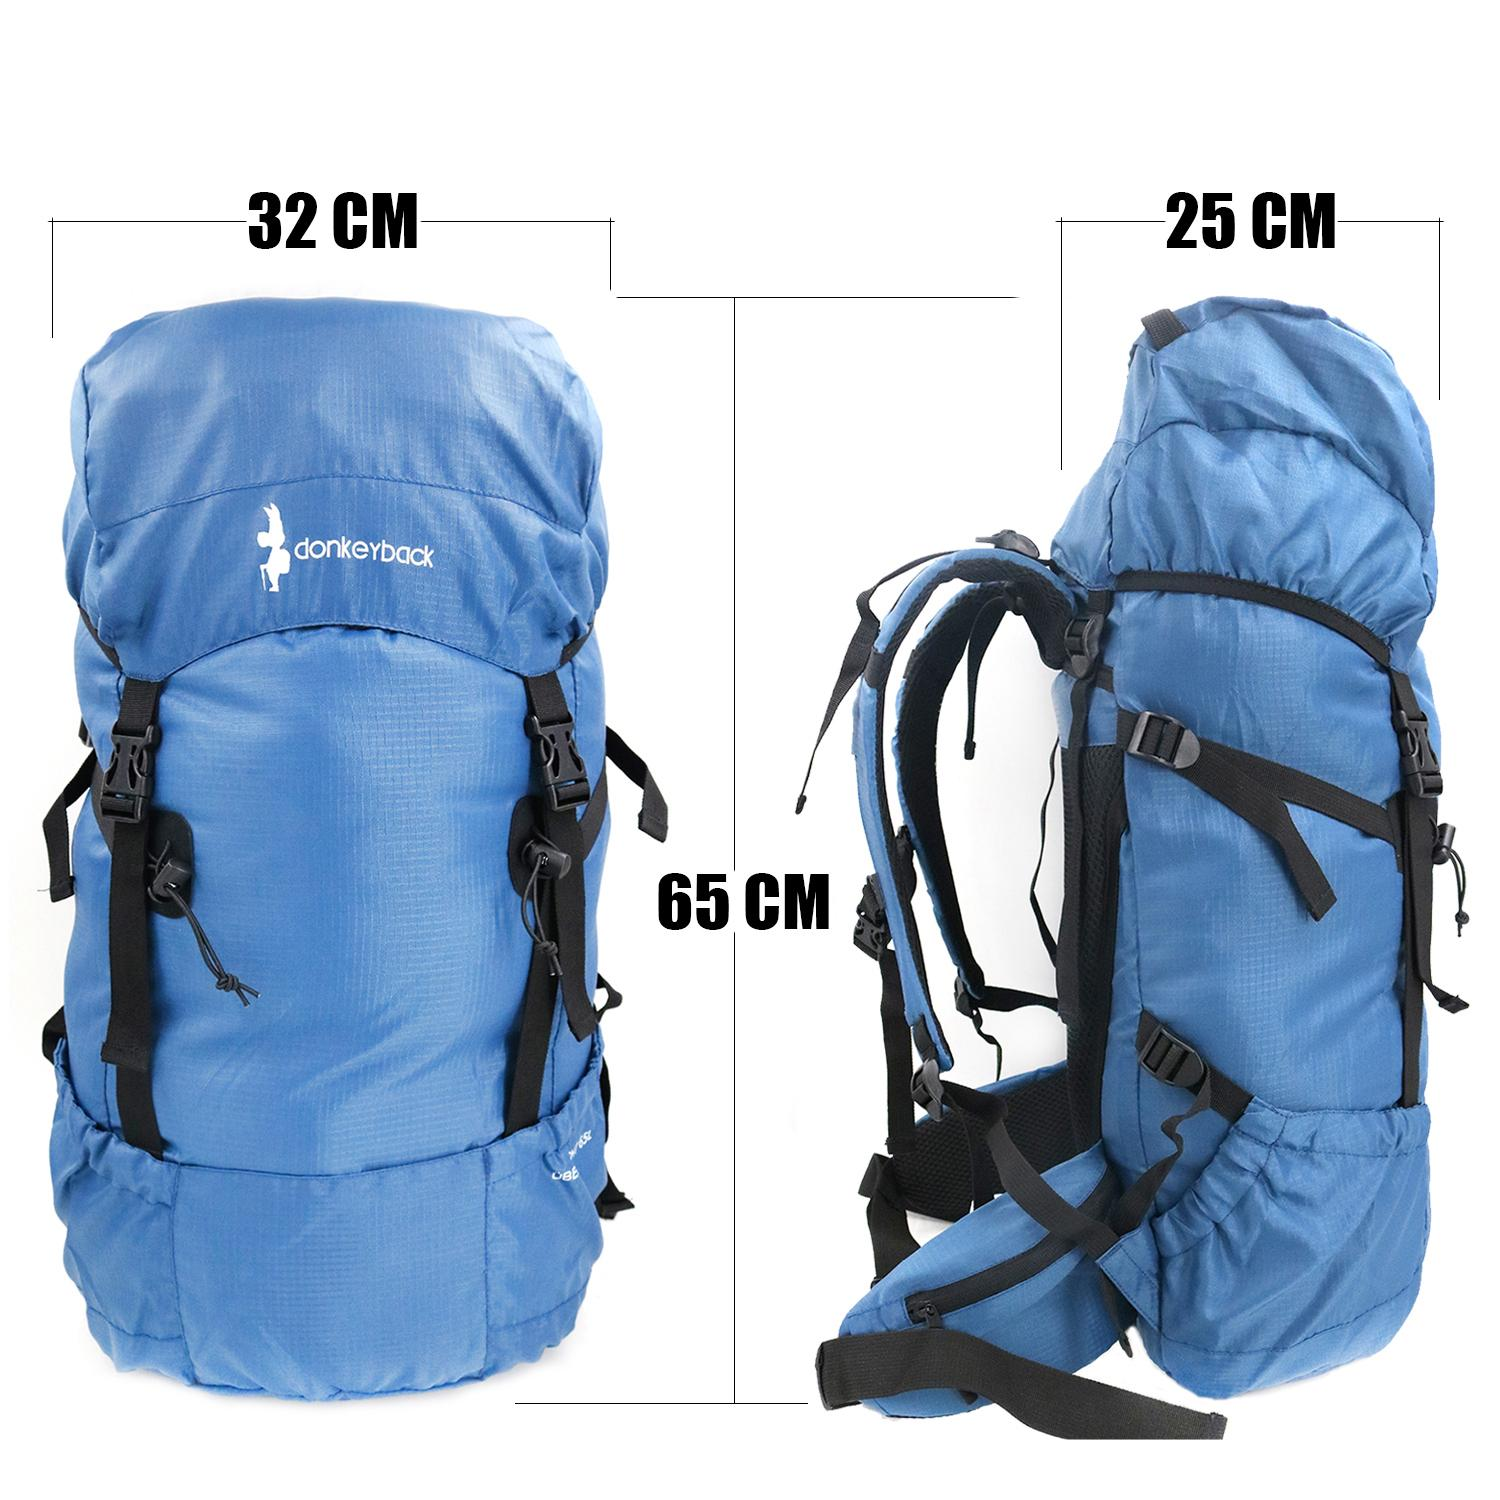 cf298466bb05 Hodeso 65L DonkeyBack Hiking Backback Camping Bag Packable Durable Travel  Hiking Backpack Daypack